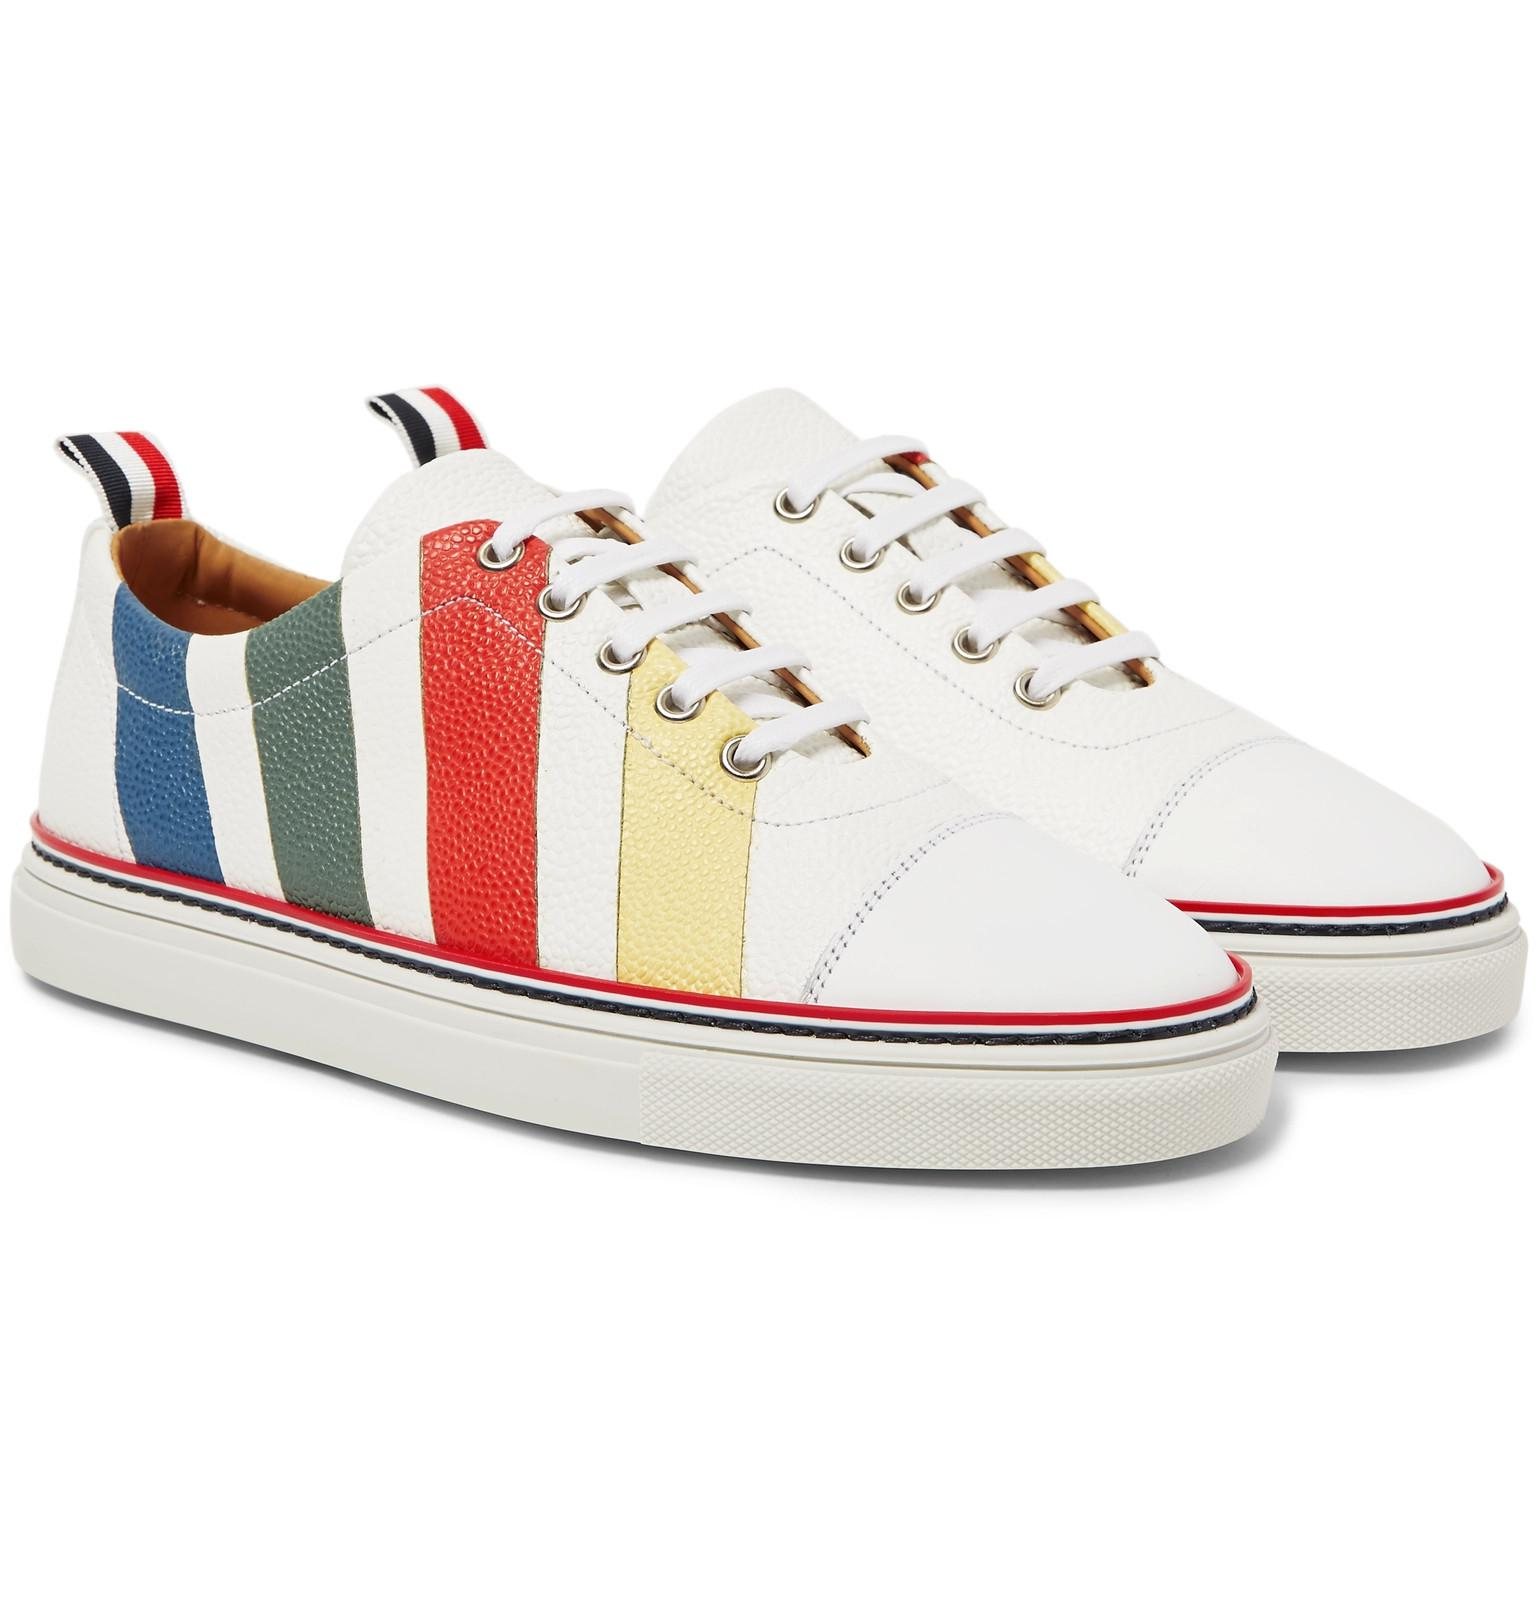 Striped Suede And Leather Sneakers Thom Browne GeSUJt7Cb